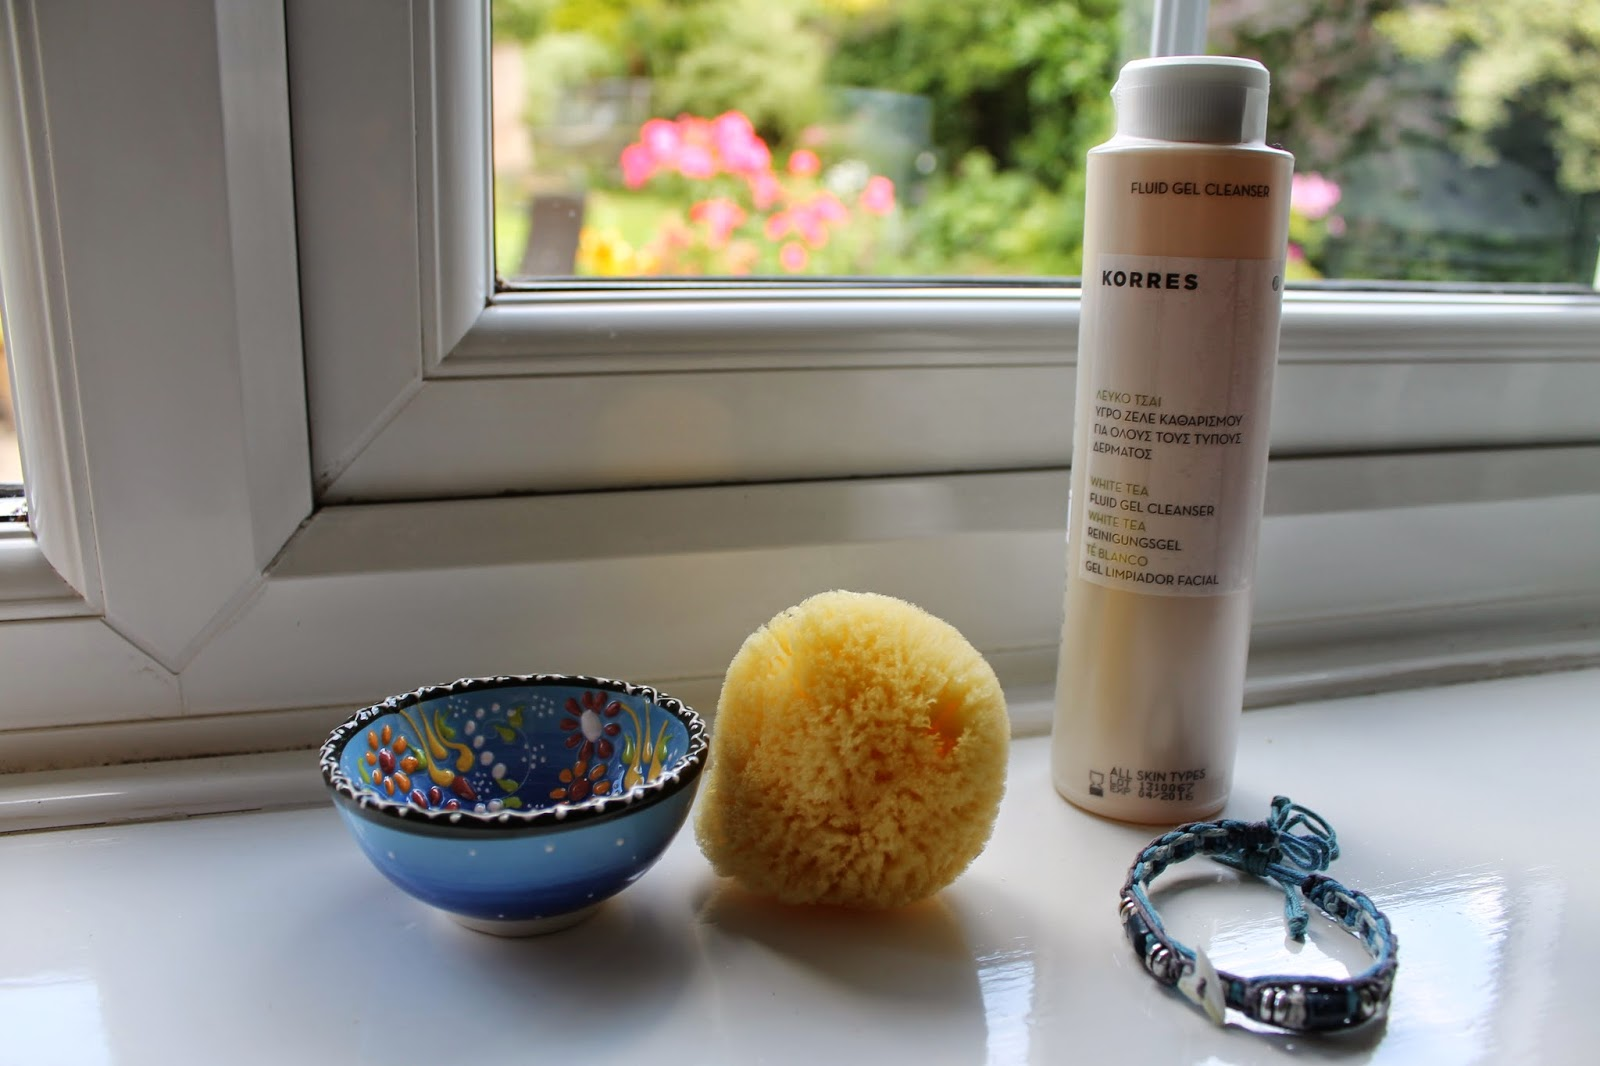 Rhodes Holiday Haul: Bowl, Sponge, Cleanser, Bracelet